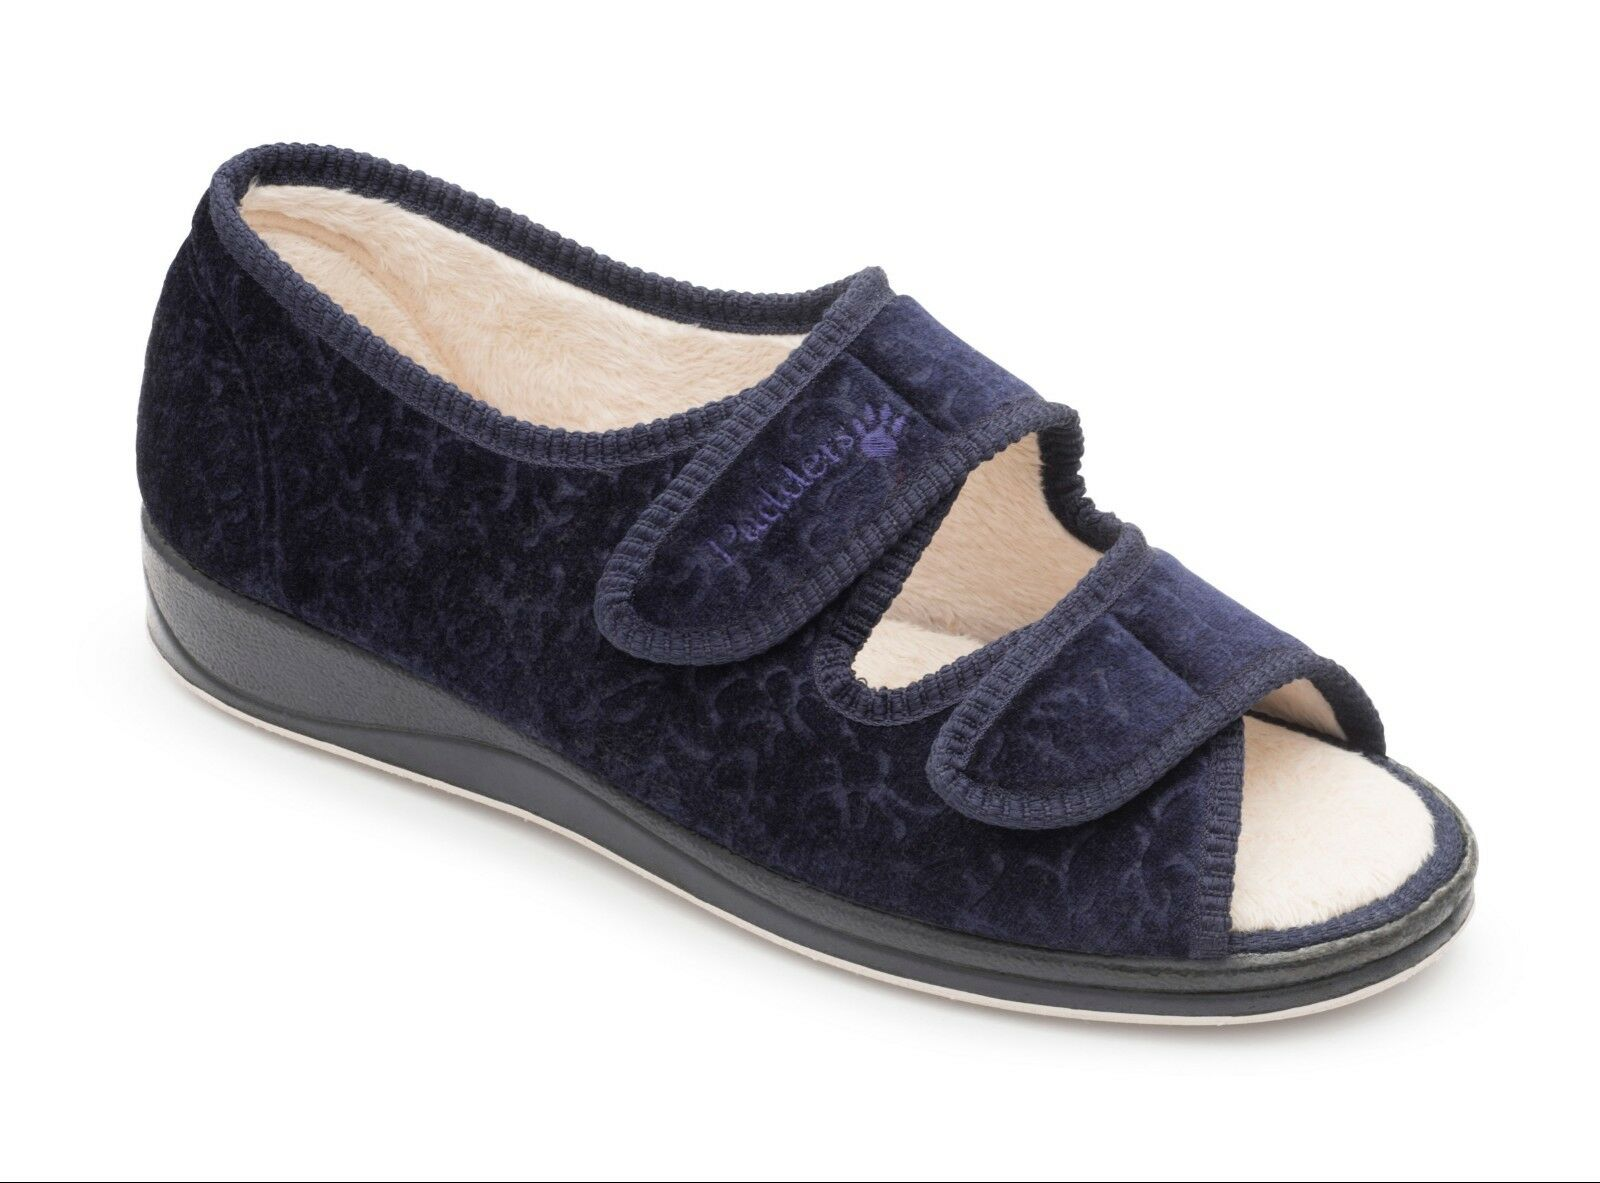 LADIES PADDERS EE EXTRA WIDE FIT STRAP SLIPPERS SHOES, NAVY LYDIA